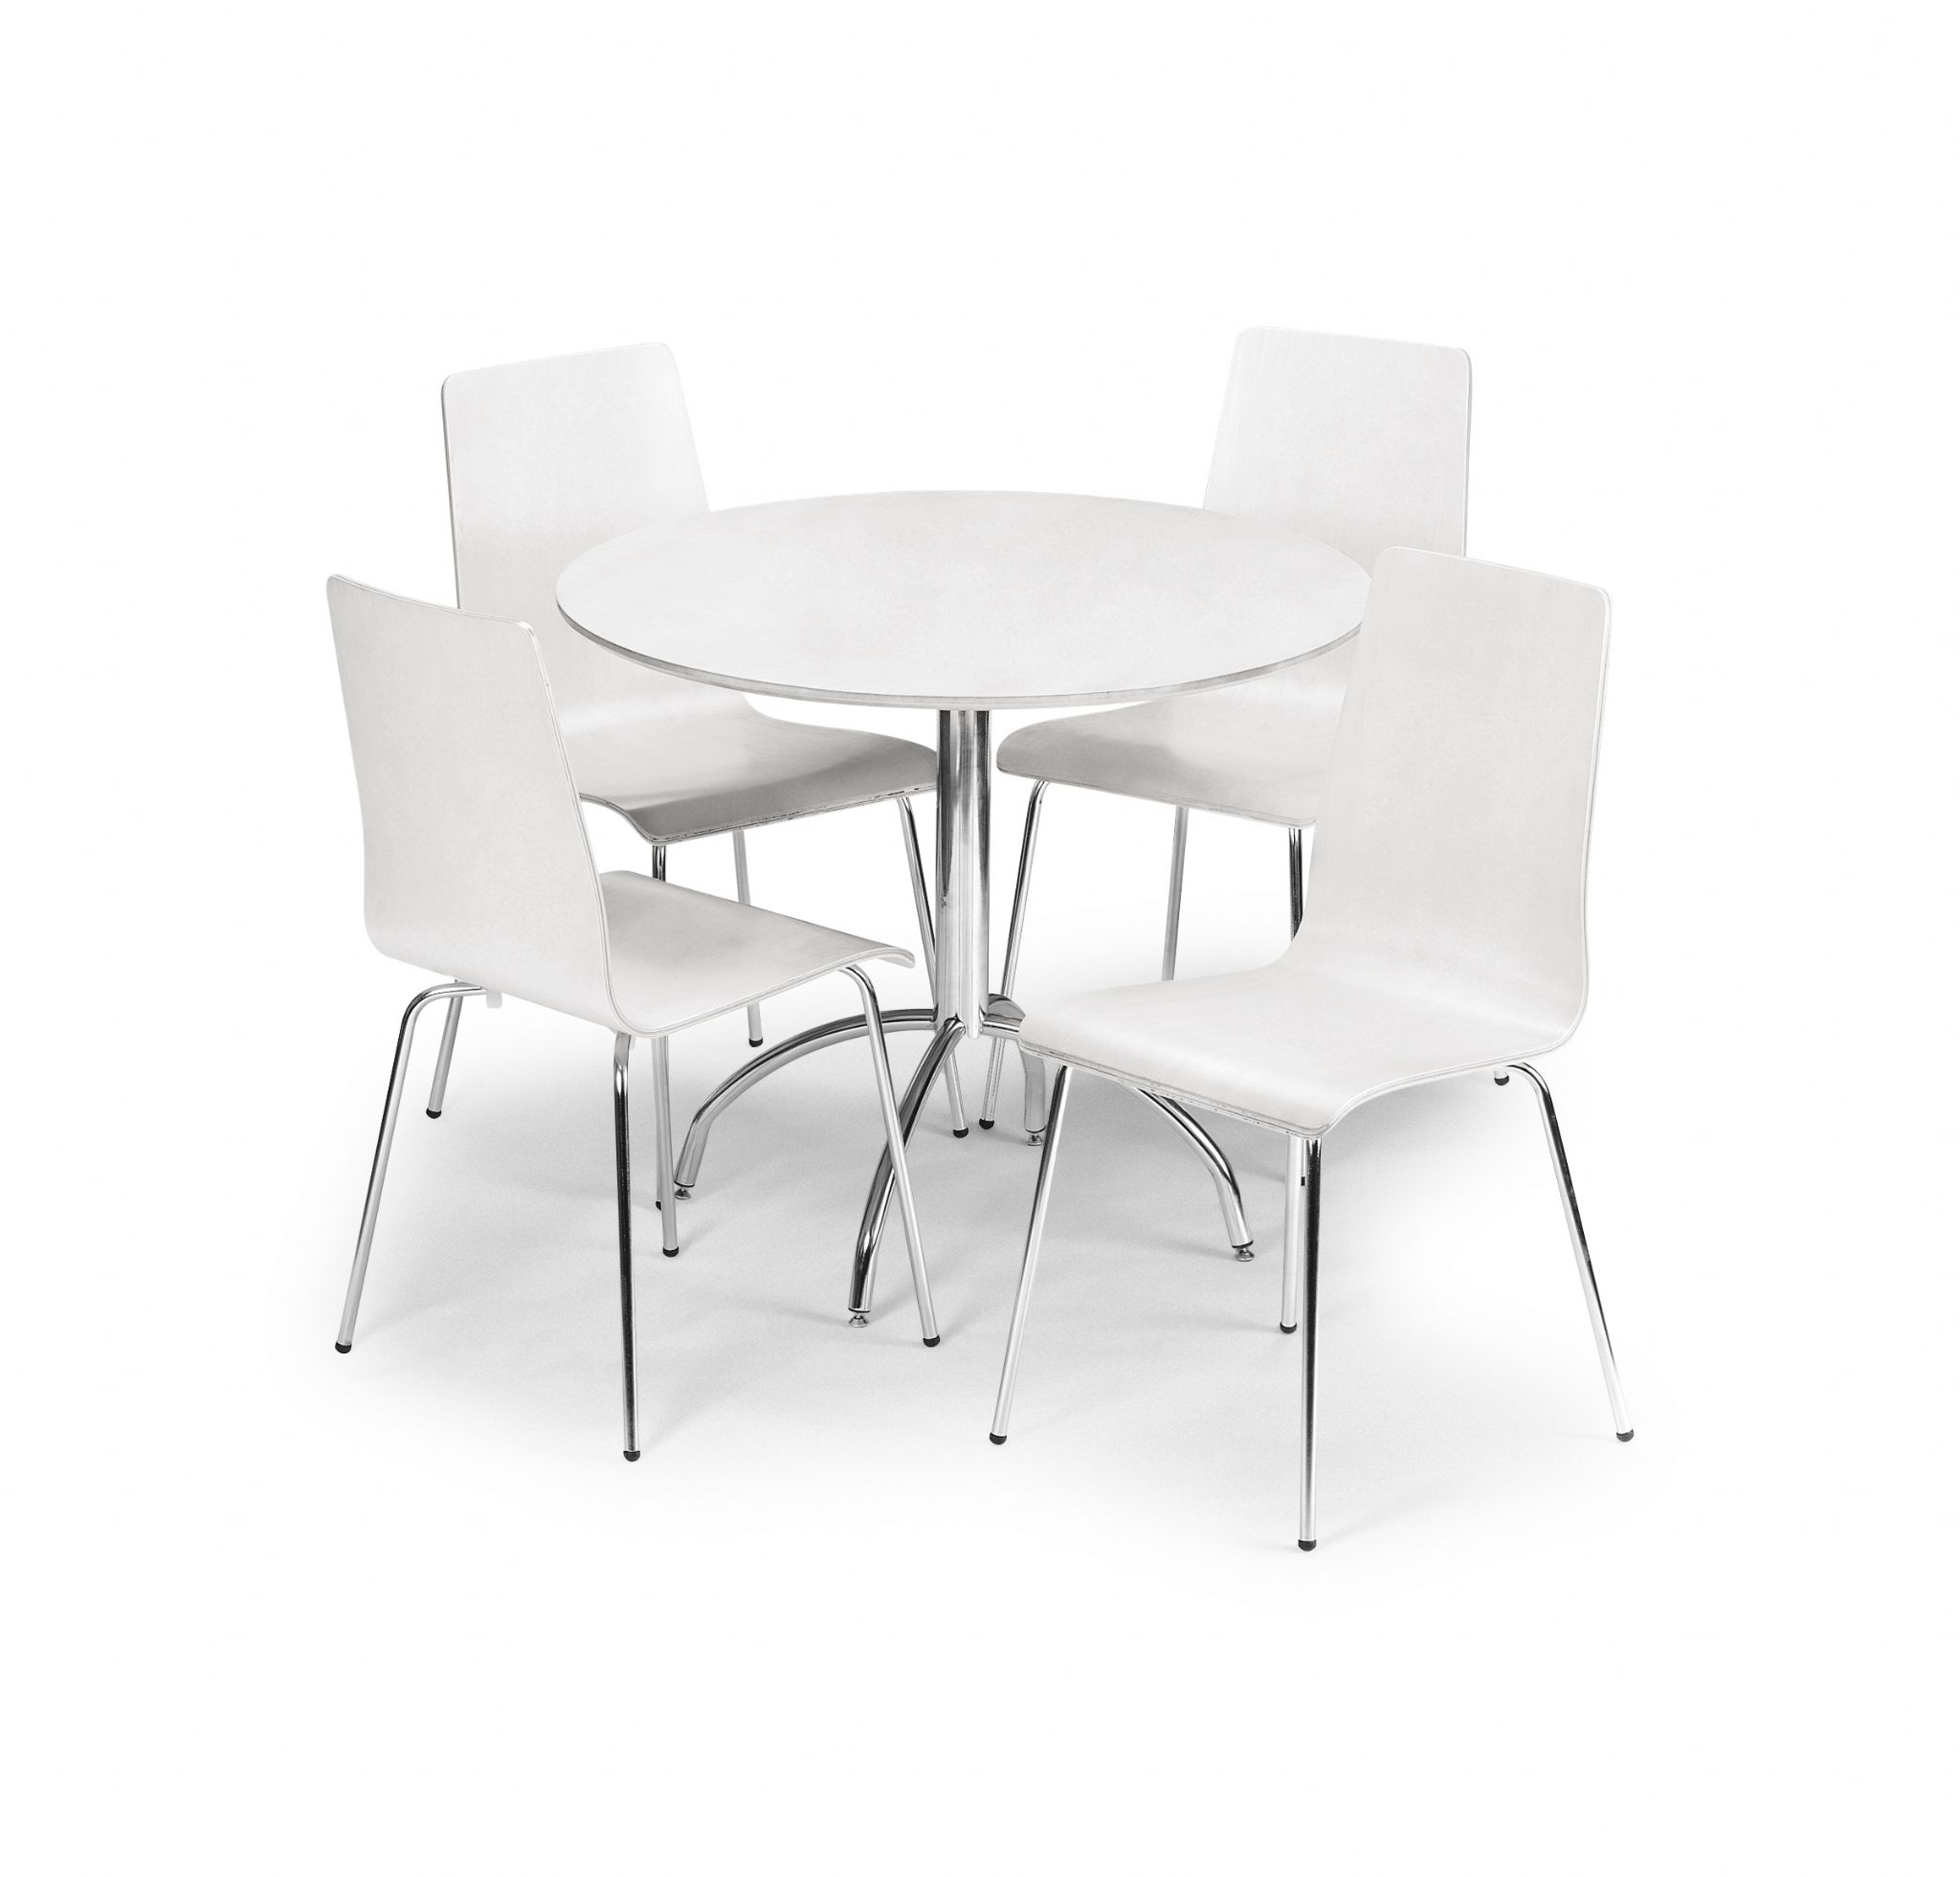 chrome dining chairs uk wicker bedroom chair ebay sagunto white pedestal table jb305